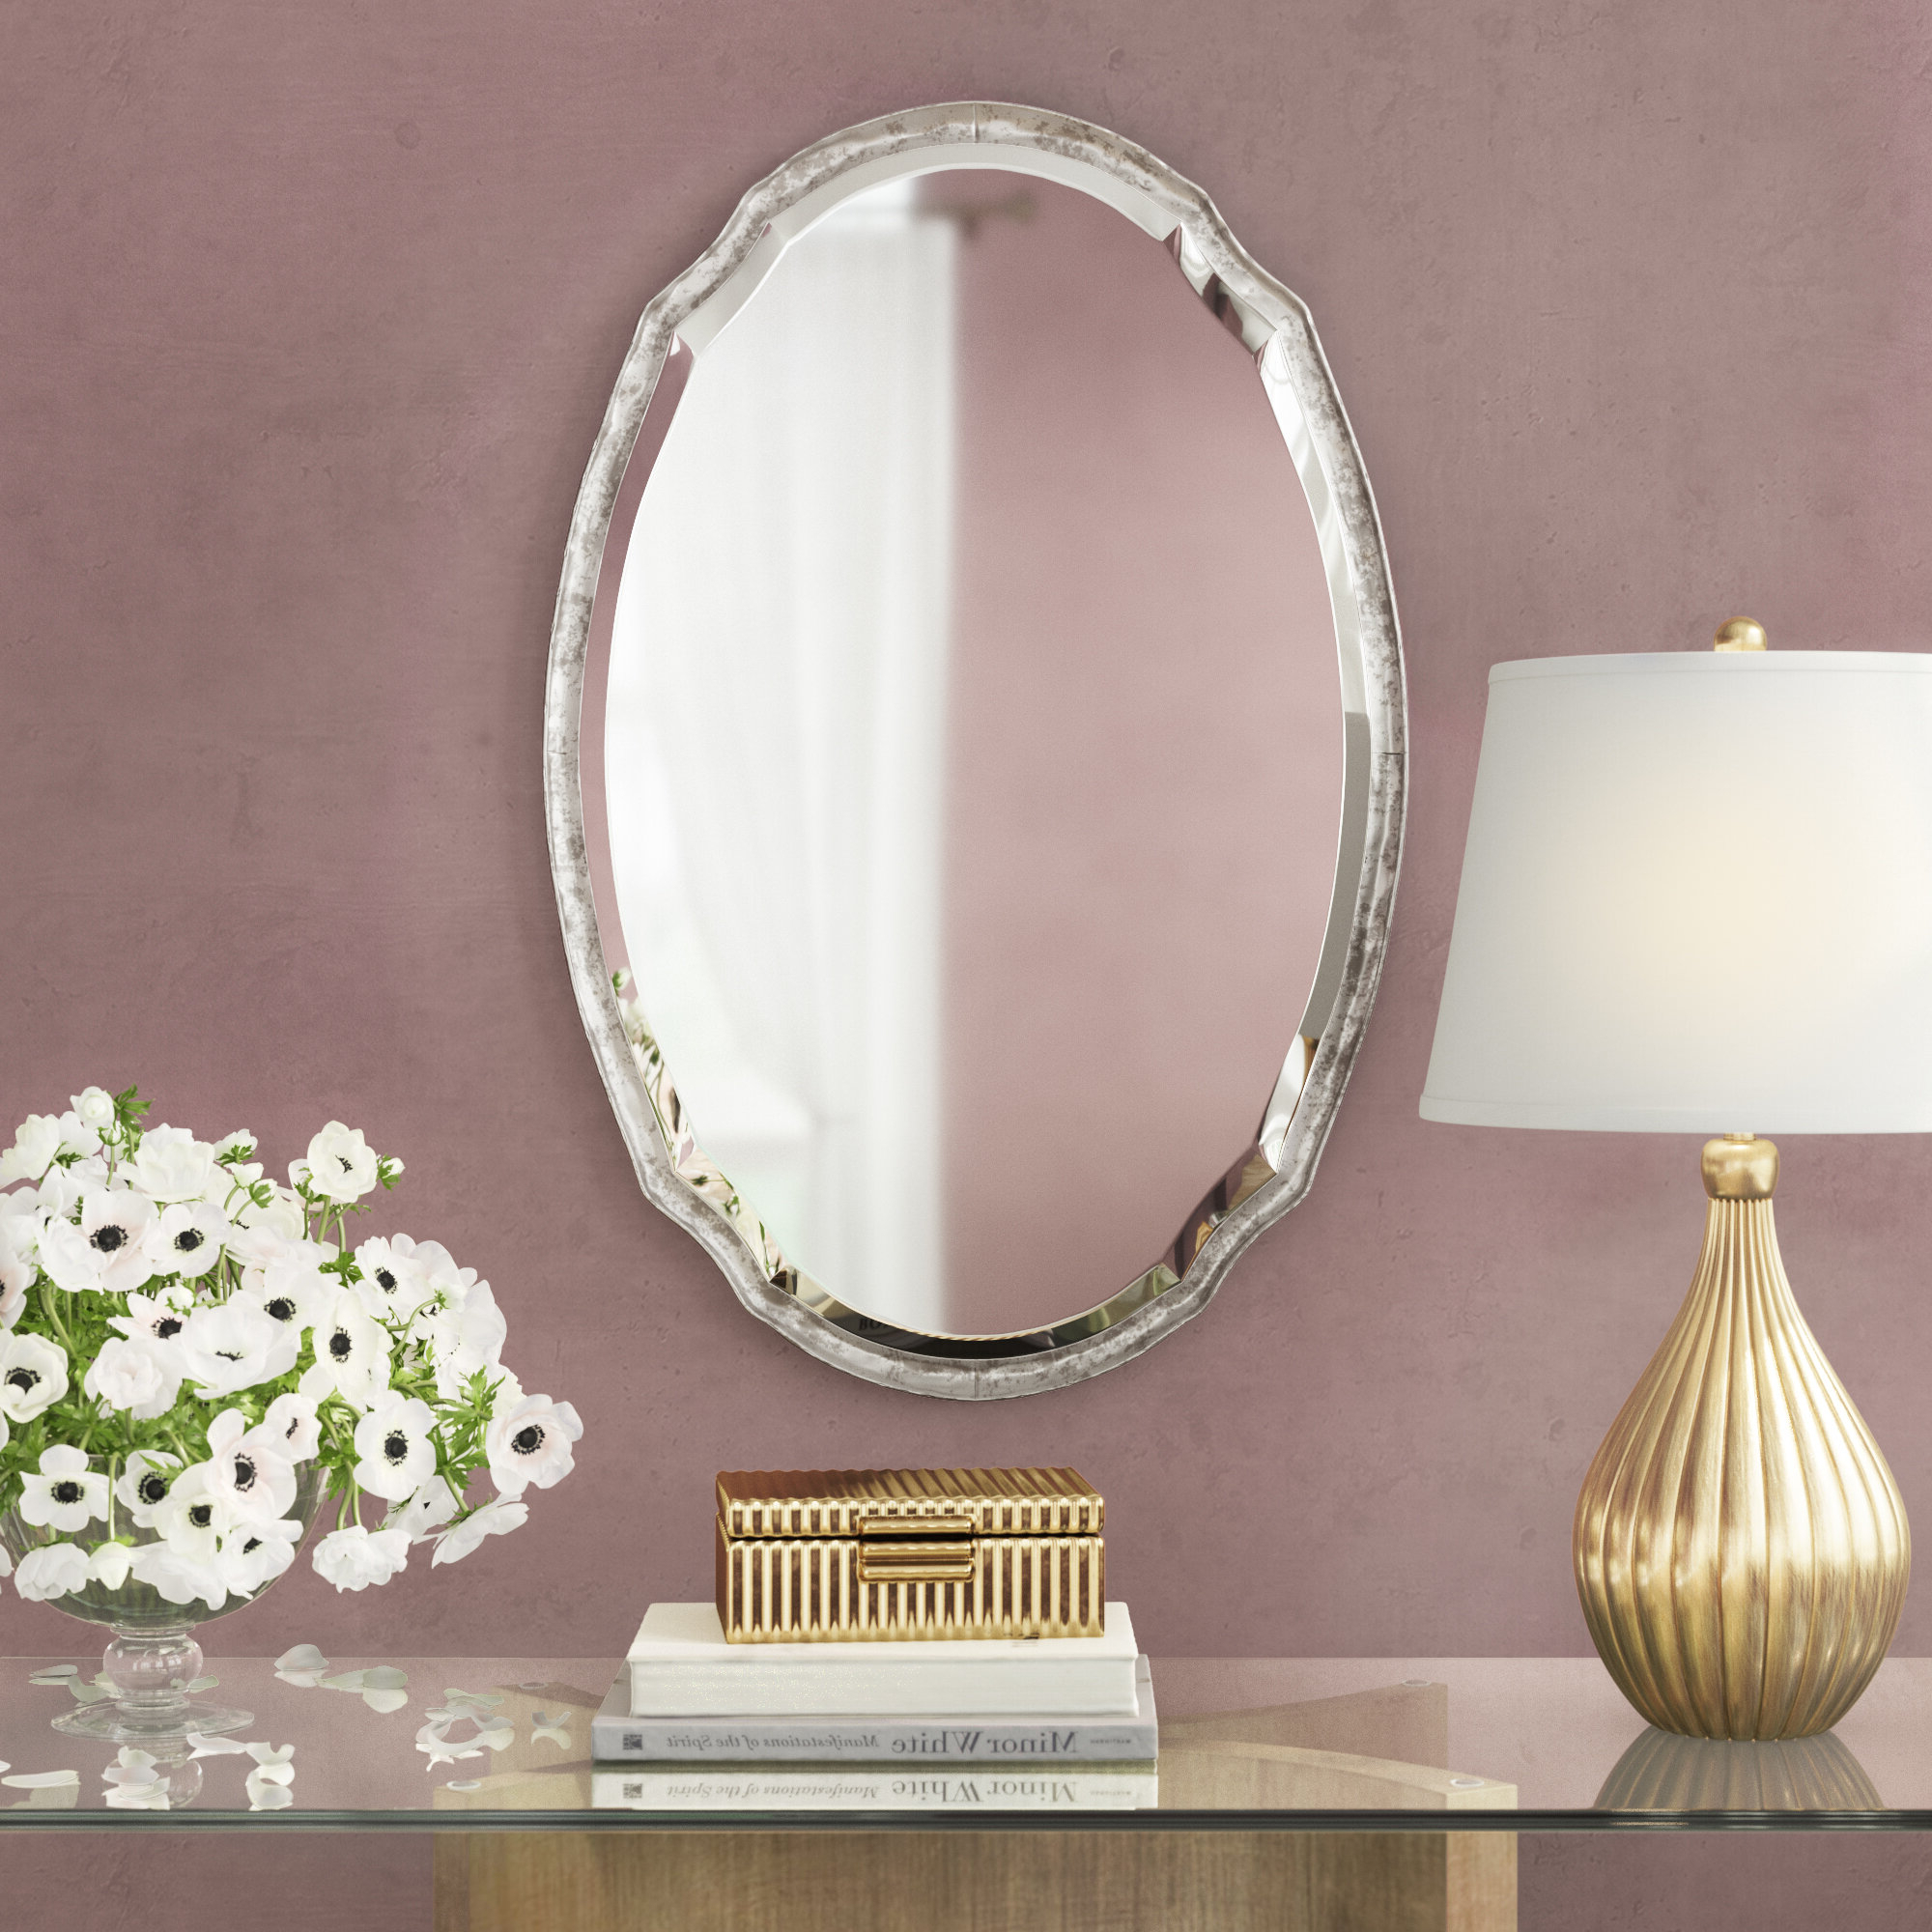 Oval Shaped Wall Mirrors With Regard To Most Recent Aguirre Wall Mirror (View 13 of 20)